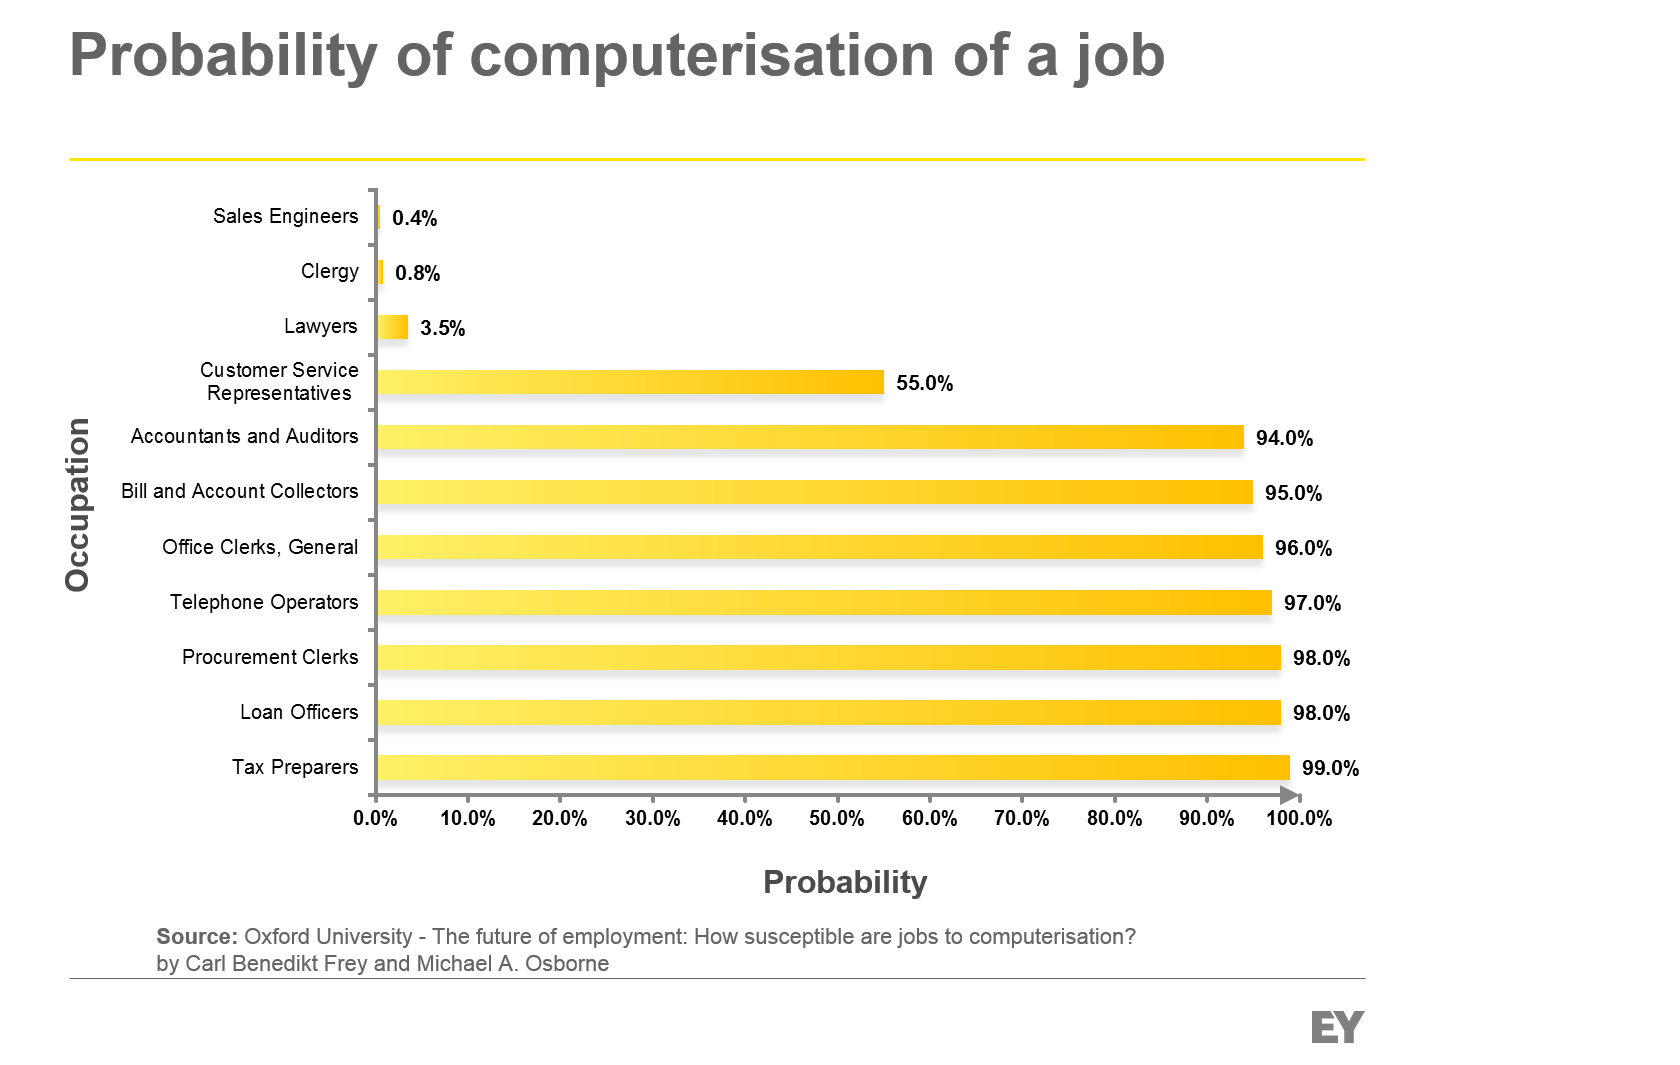 Probability of computarisation of a job